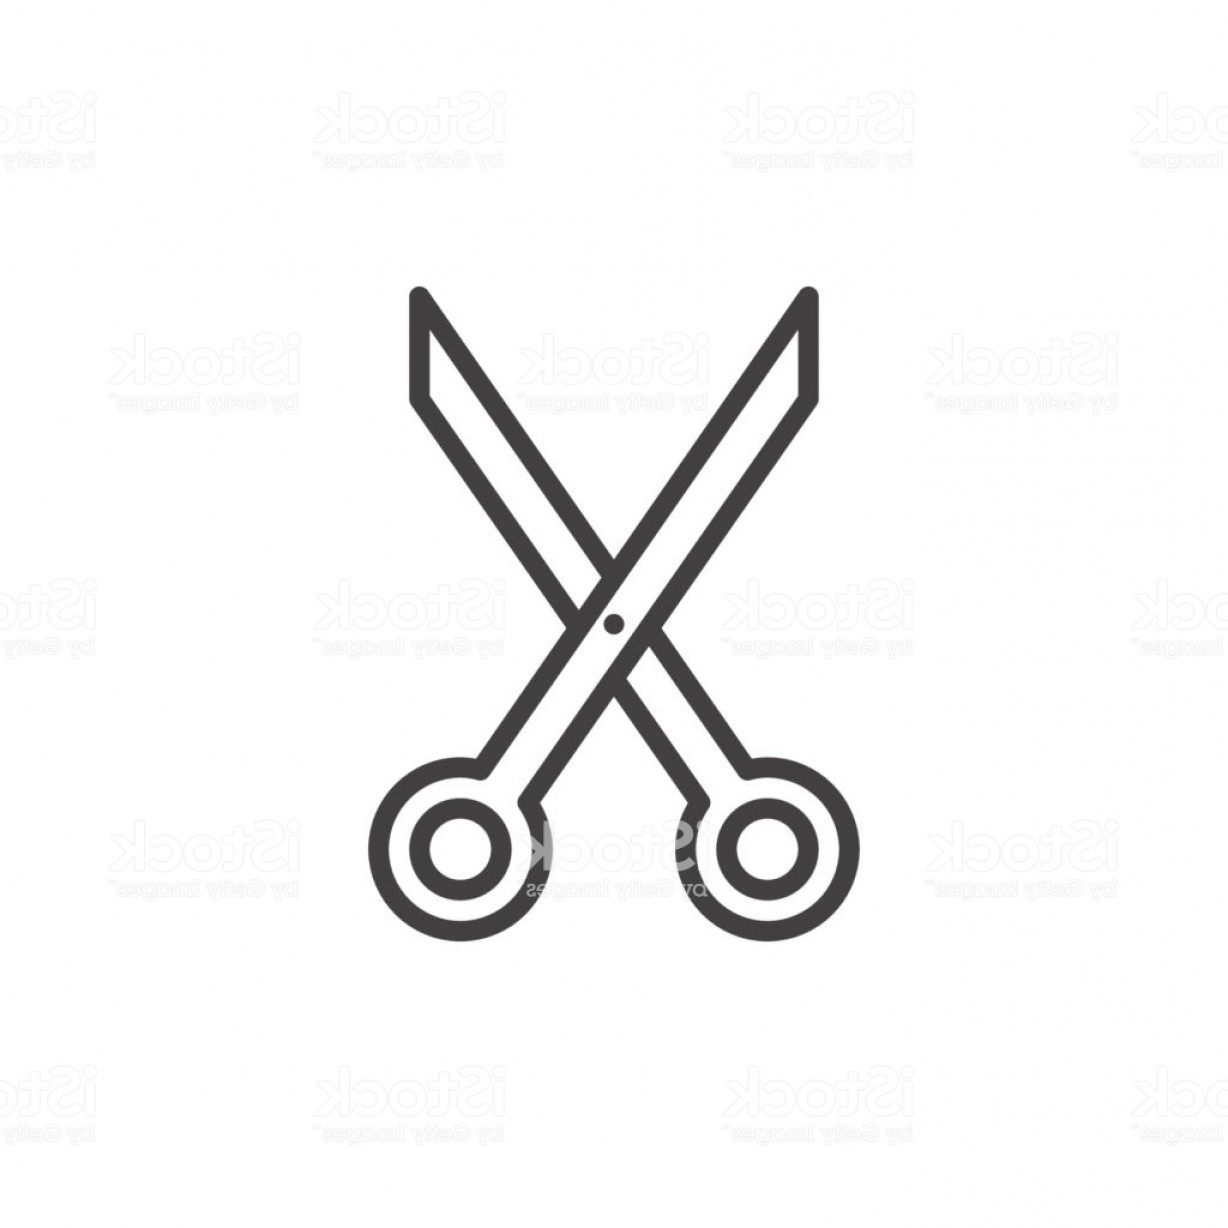 Cut Symbol Vector: Scissors Cut Line Icon Outline Vector Sign Linear Style Pictogram Isolated On White Gm